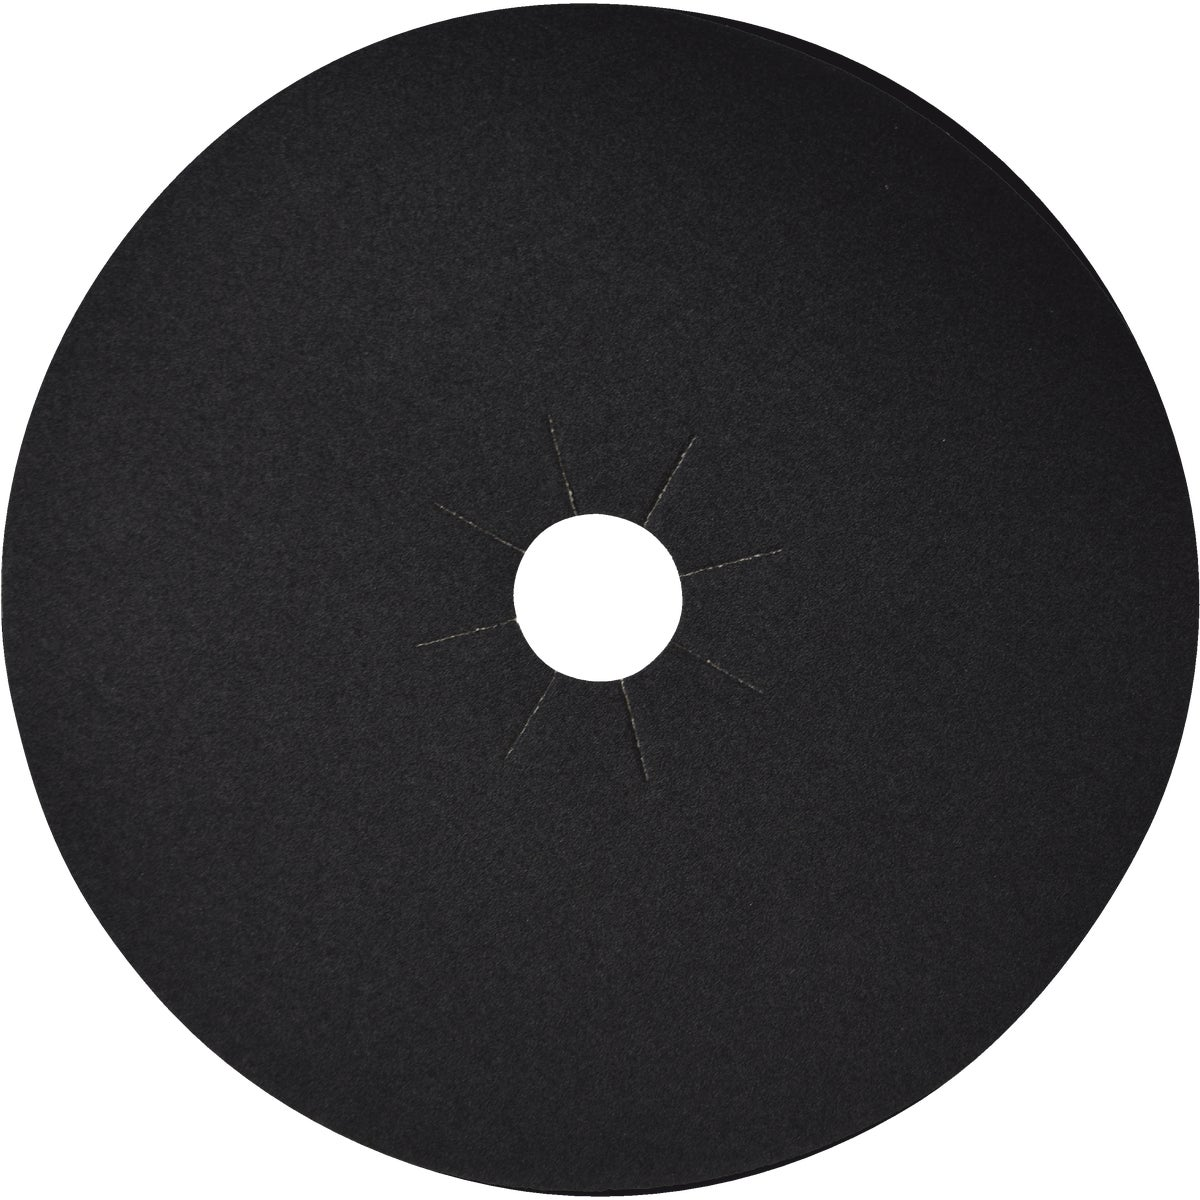 "17"" 20G FLR SANDING DISC - 007-817220 by Virginia Abrasives"